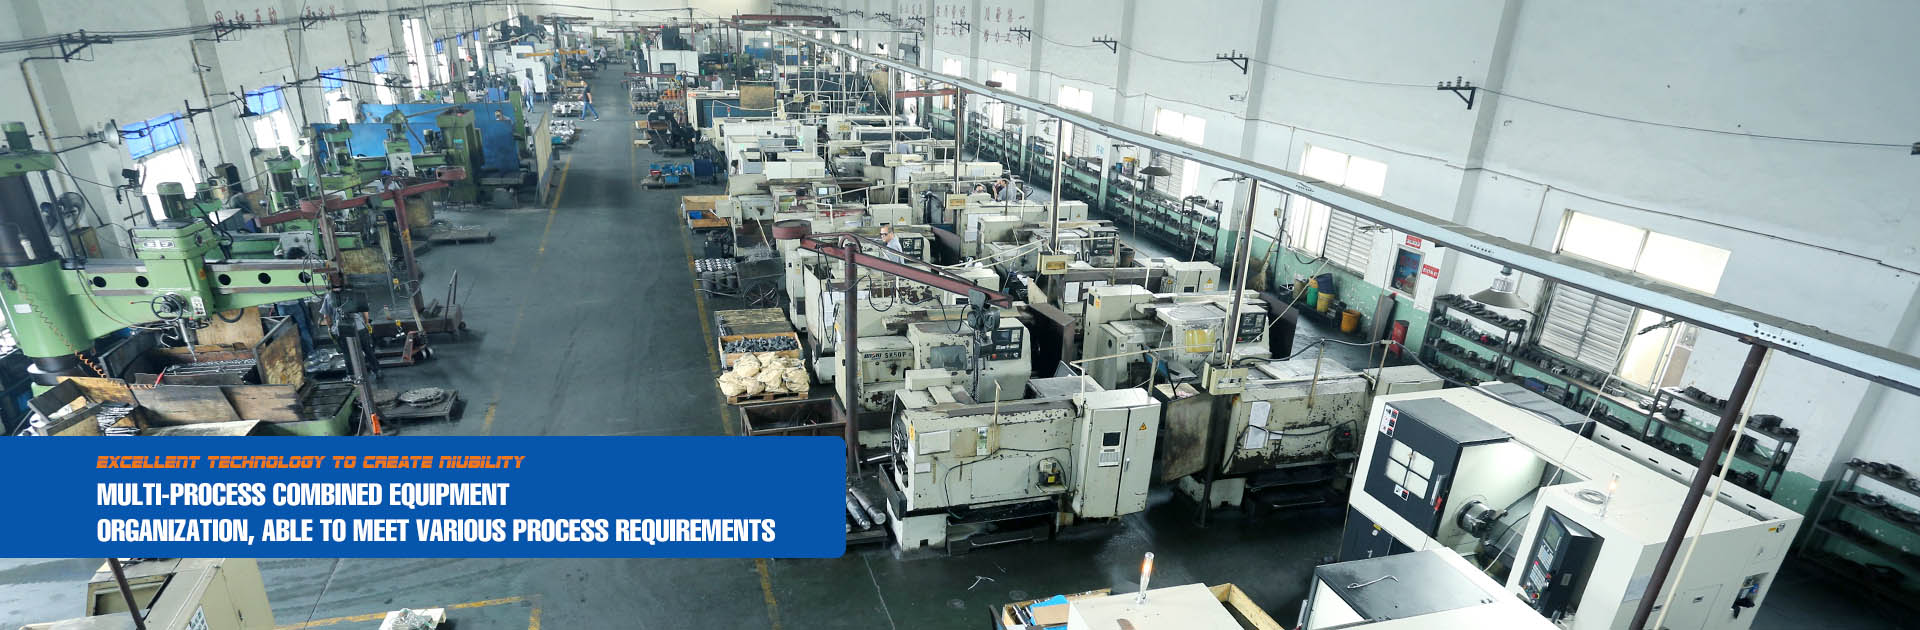 Multi-process combined equipment organization, able to meet various process requirements